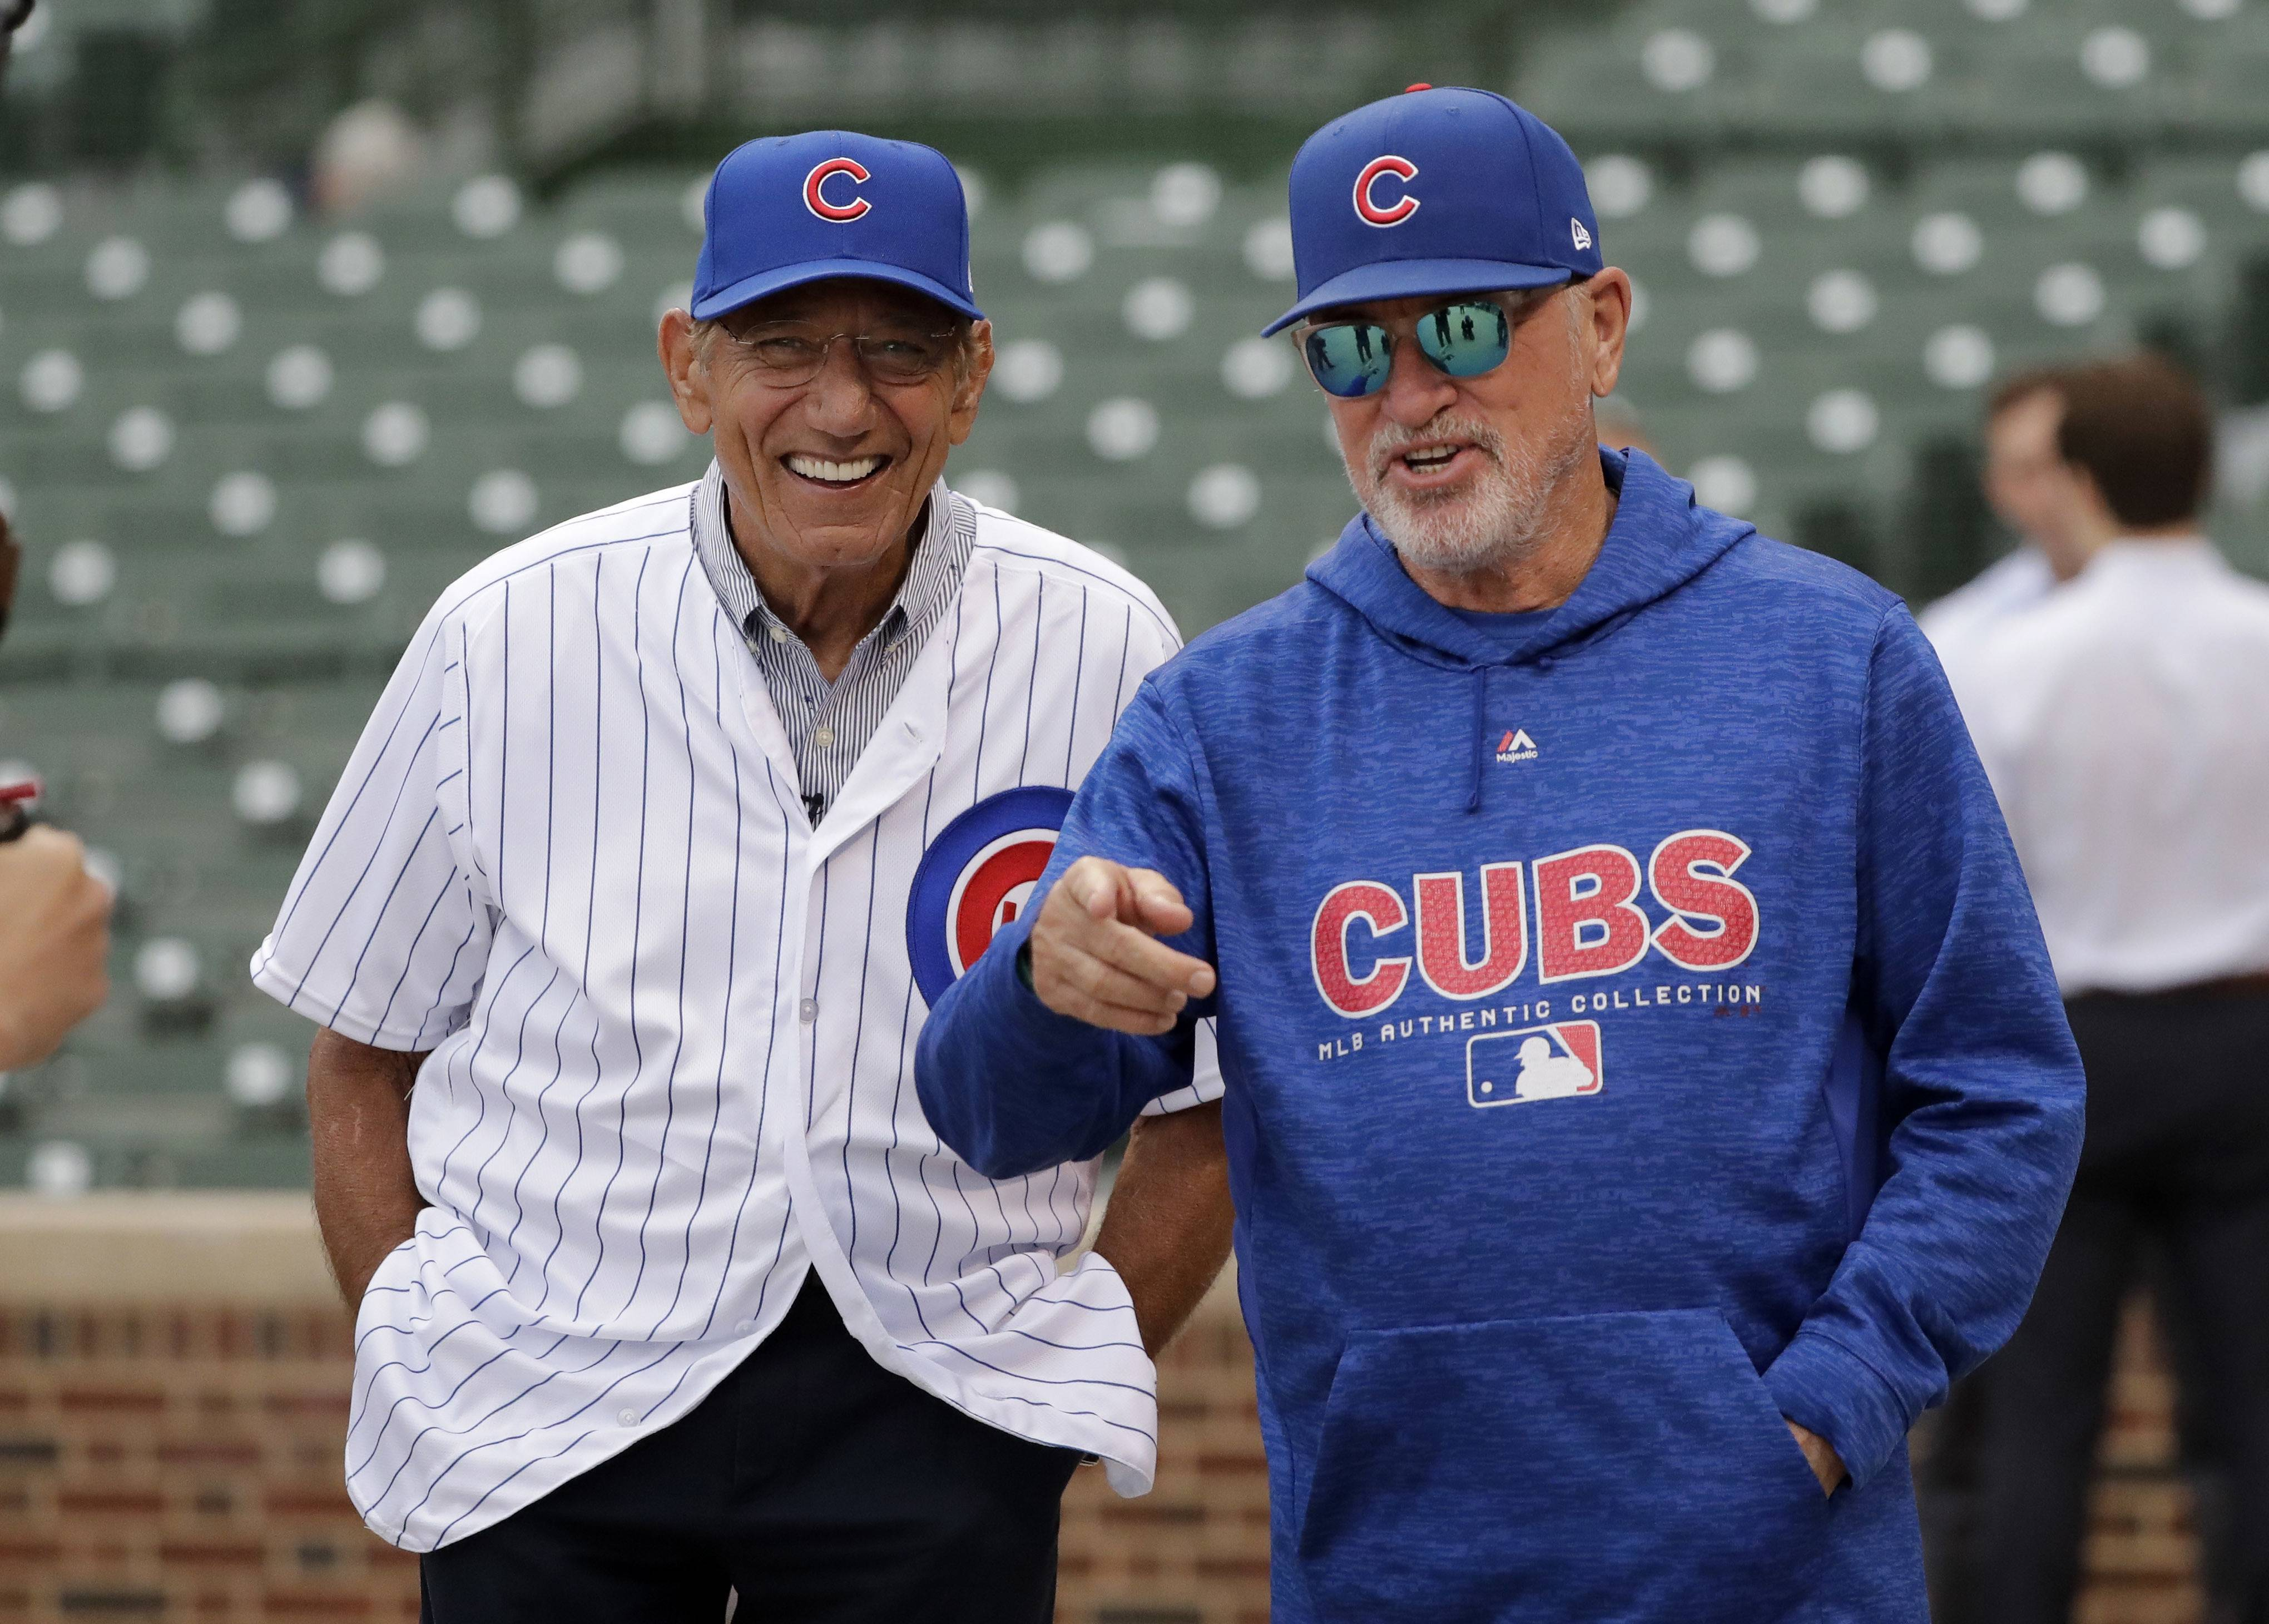 Chicago Cubs' Maddon excited about Namath visit